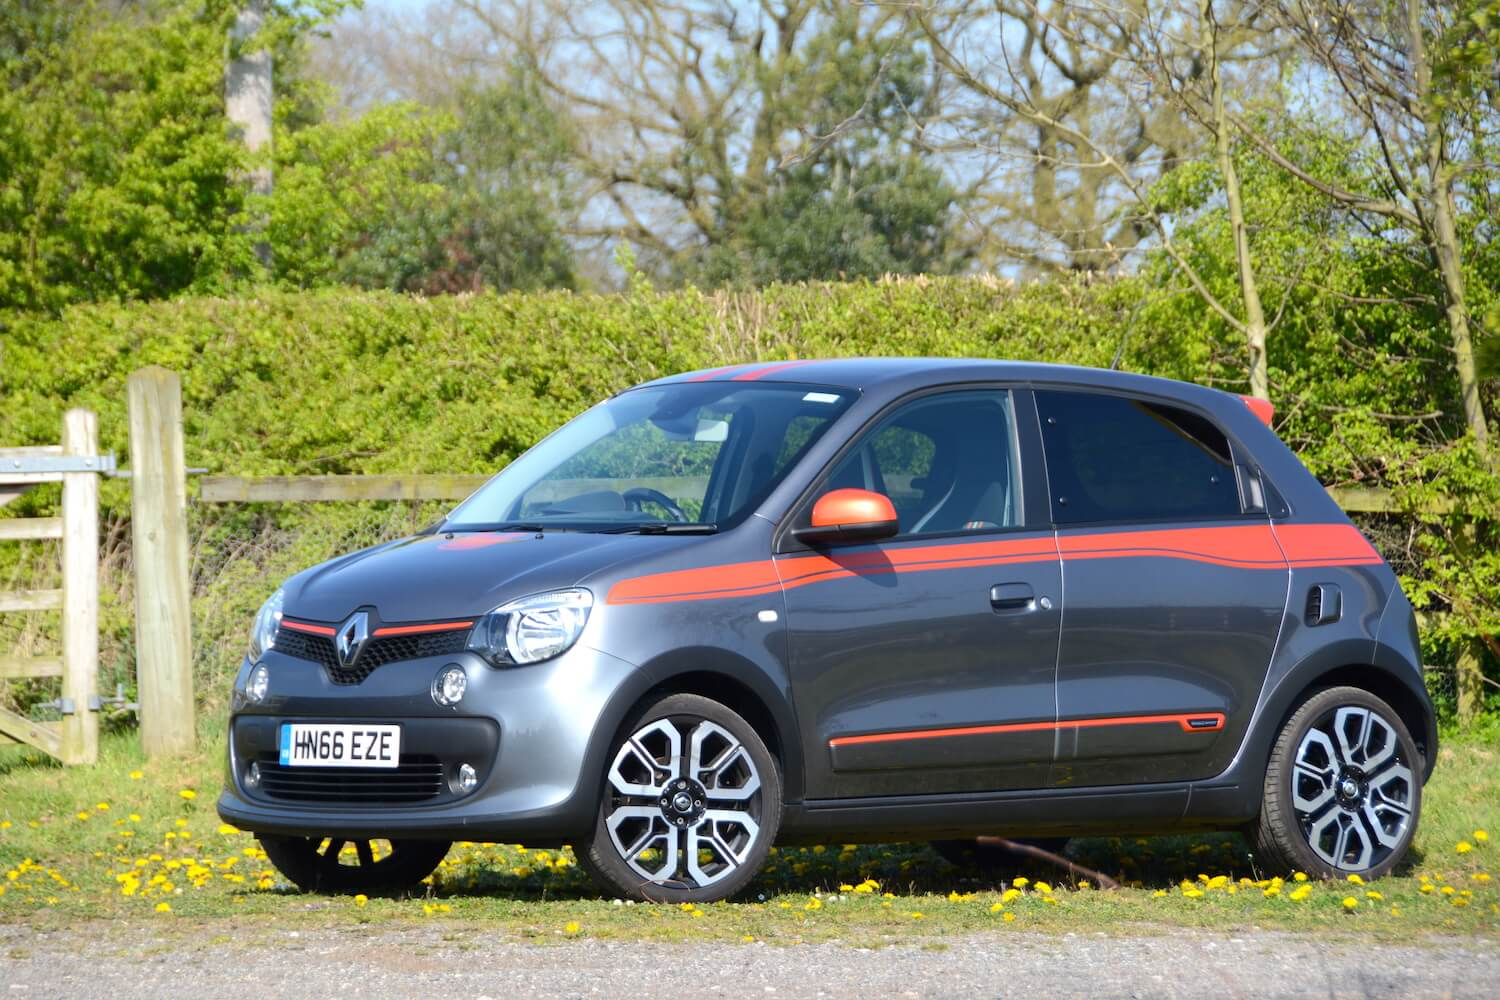 renault twingo gt v smart forfour brabus review. Black Bedroom Furniture Sets. Home Design Ideas